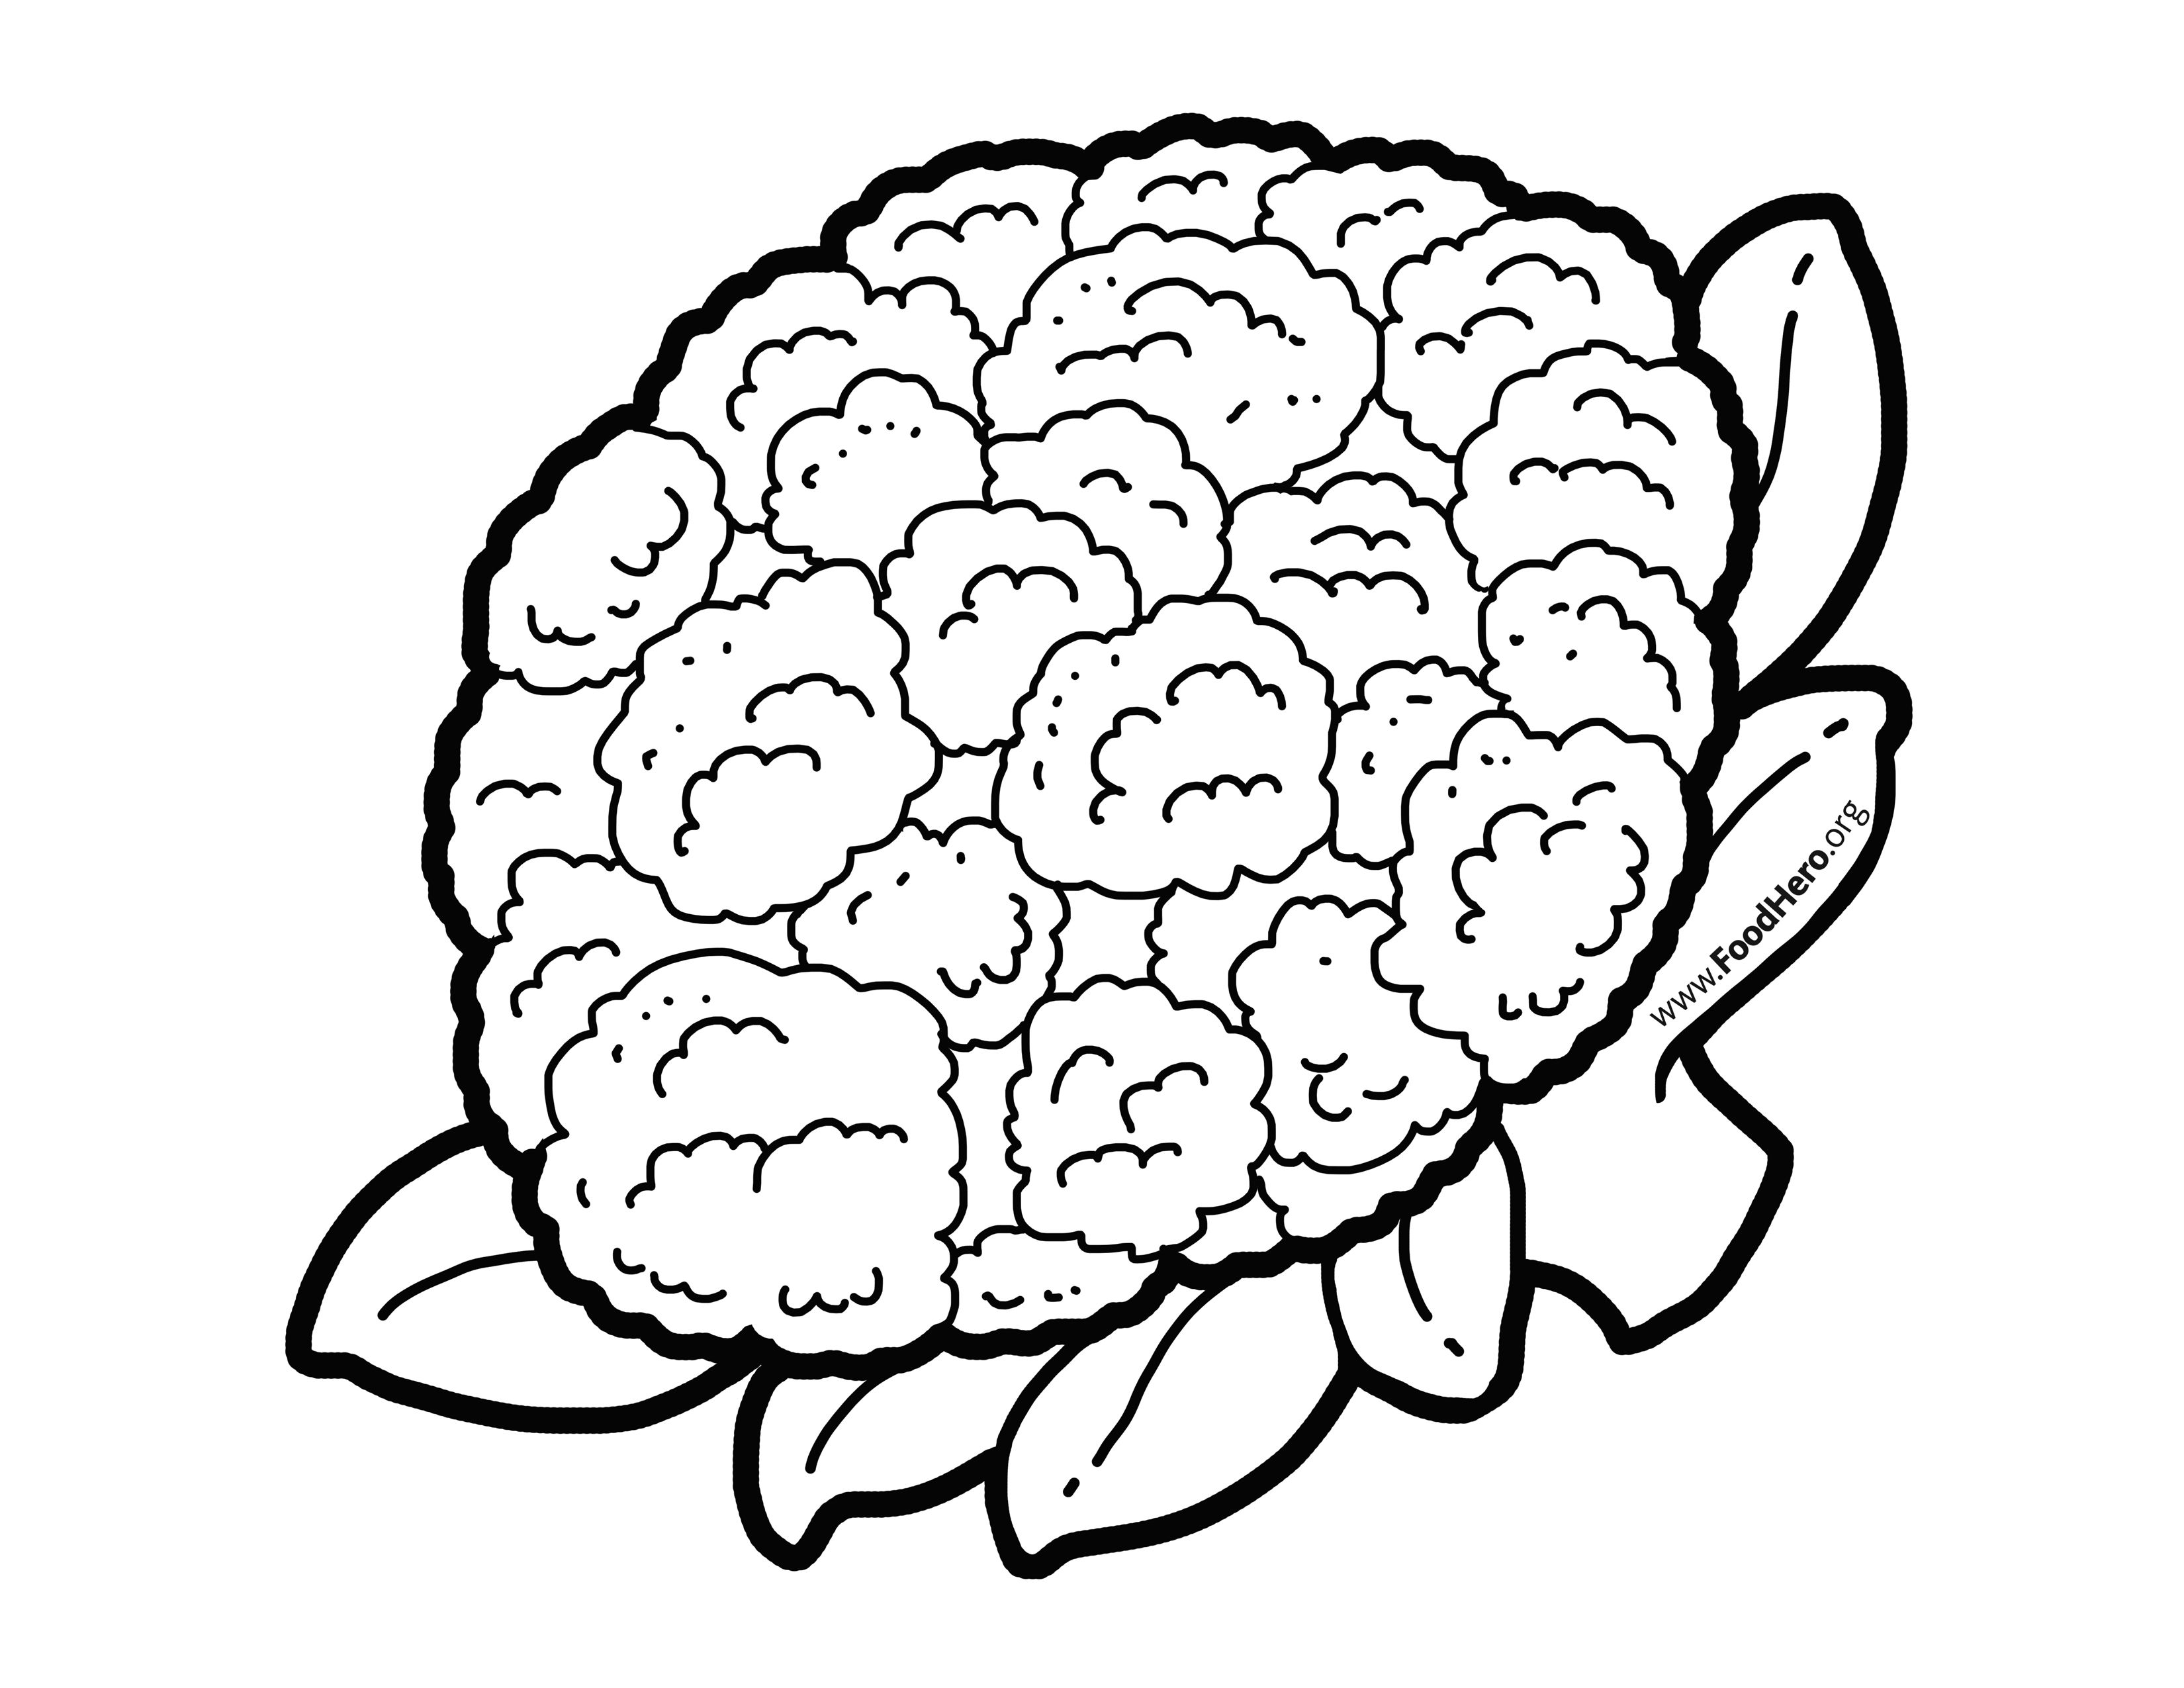 Cauliflower Illustration Found At Foodhero Org Bullentinboards